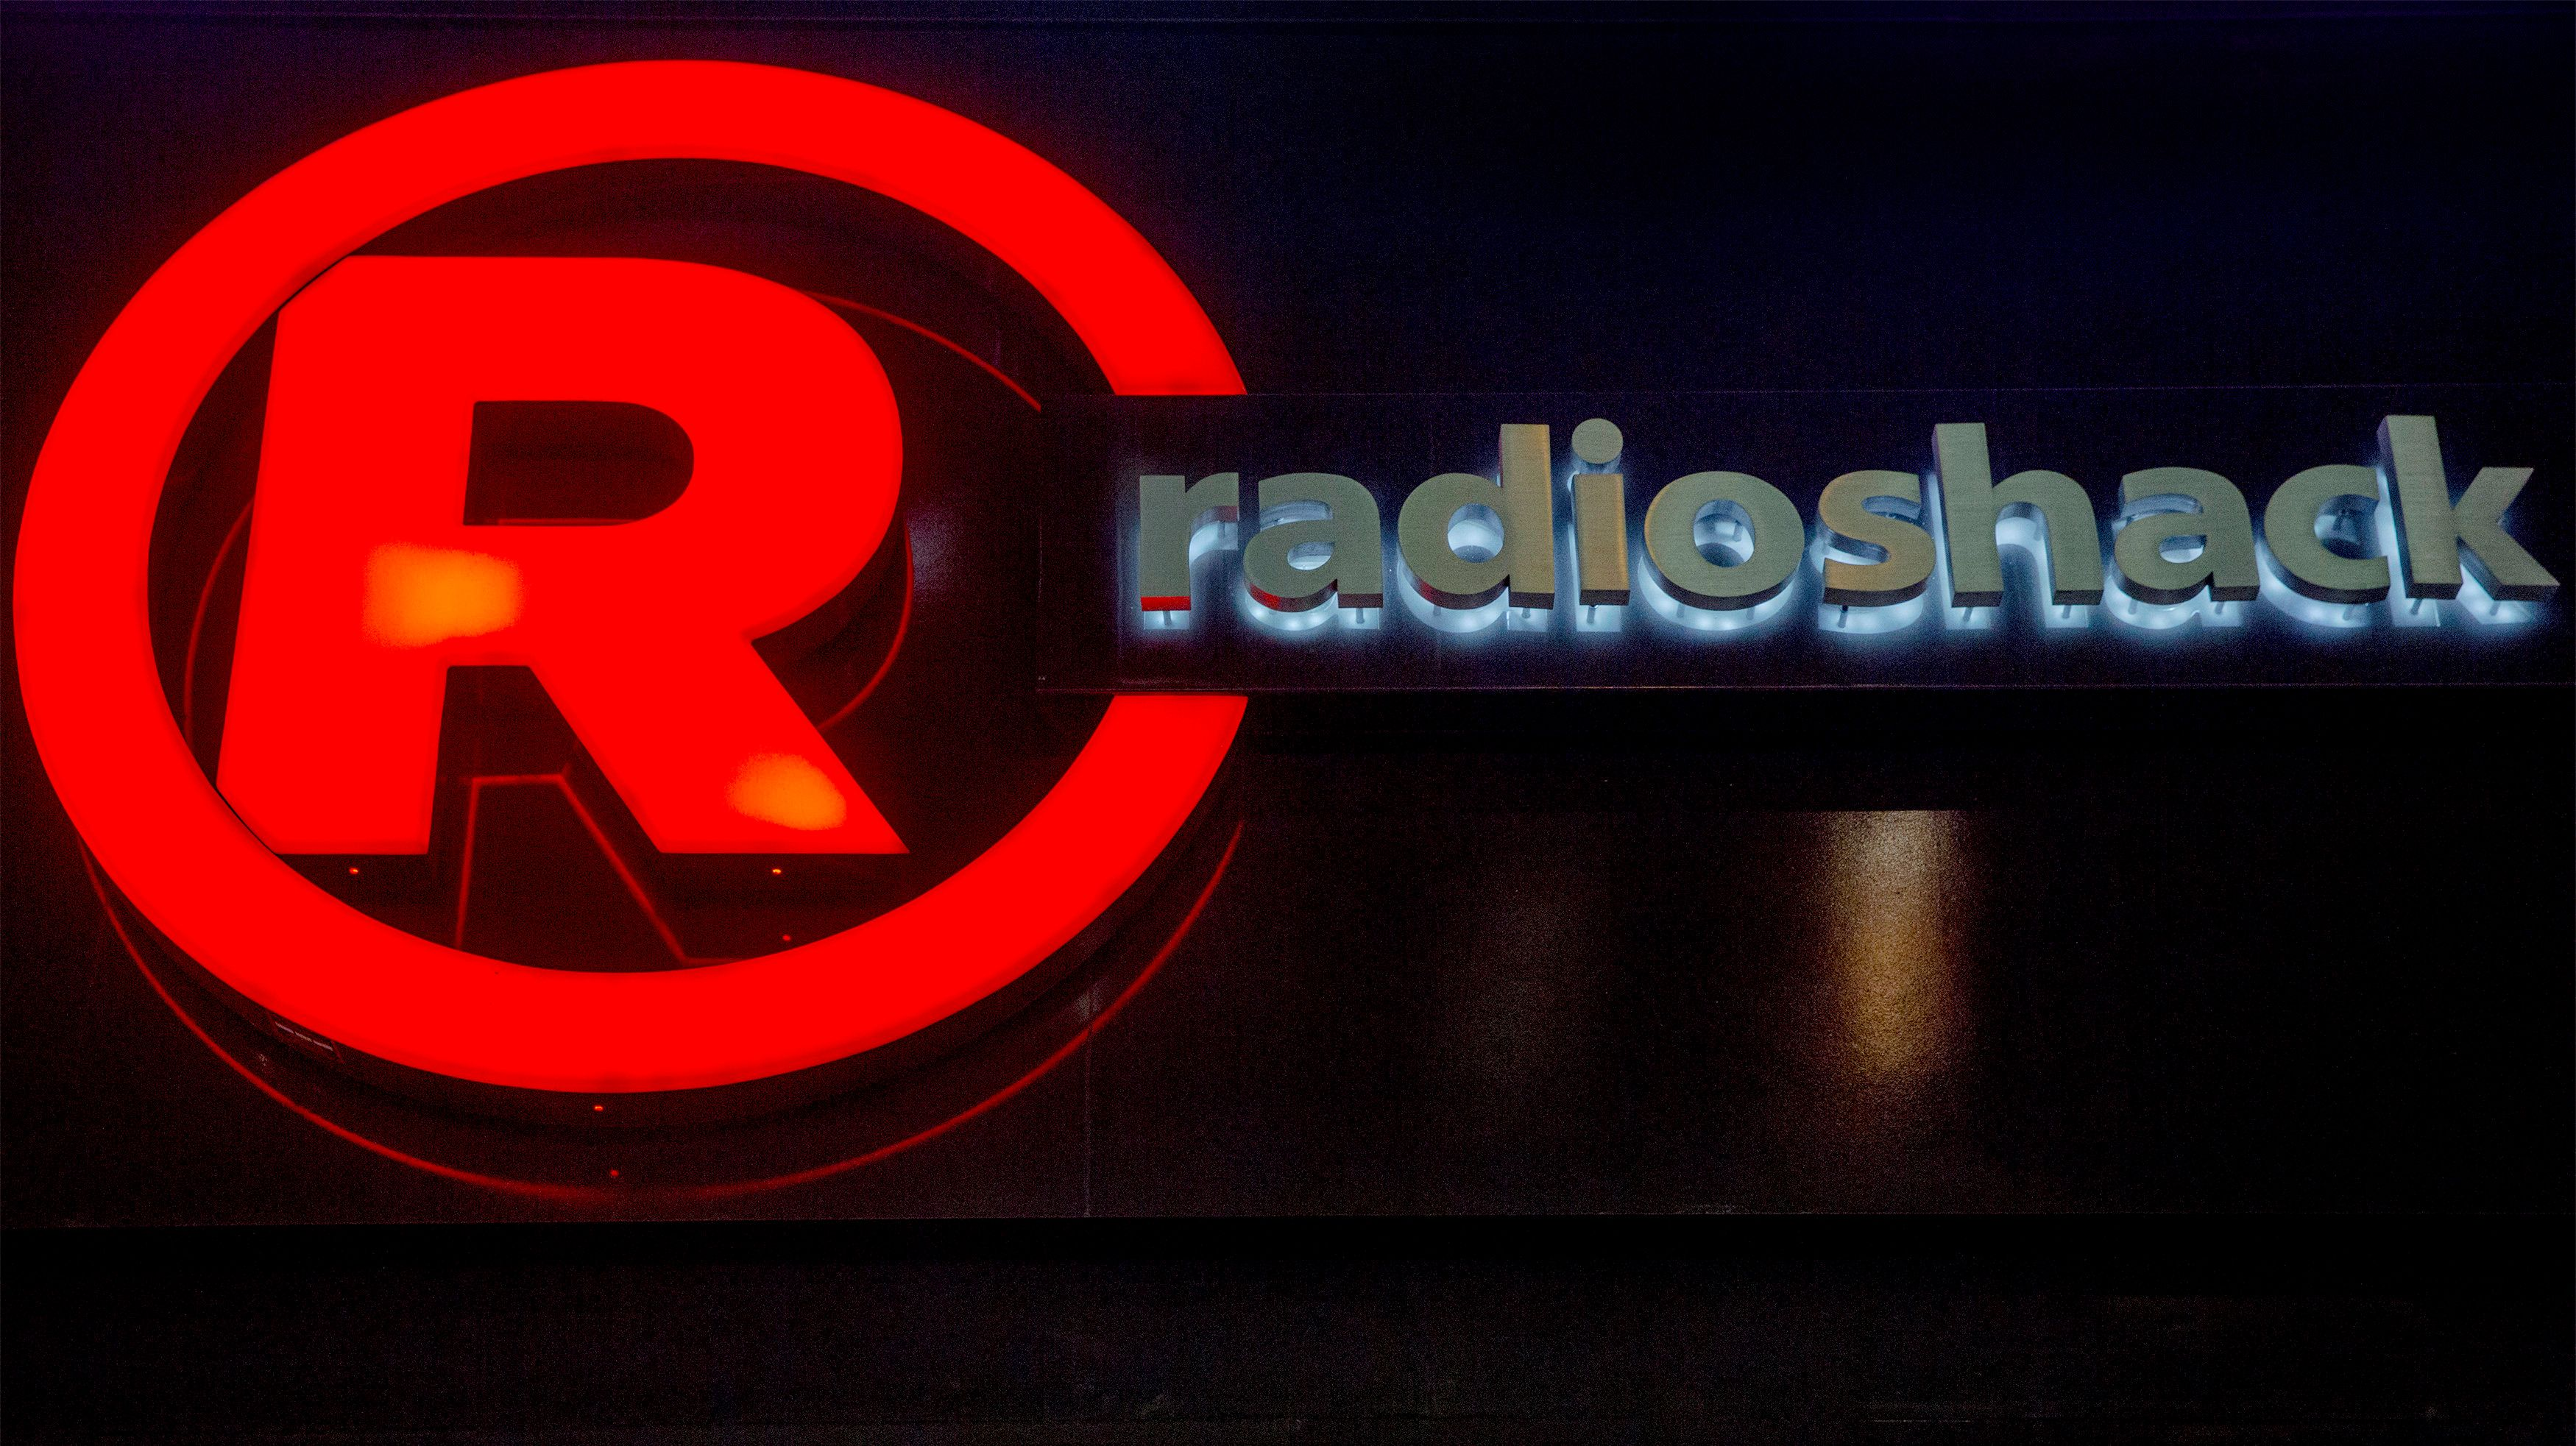 The exterior of a RadioShack store is seen in New York February 5, 2015. The electronics retailer filed for U.S. bankruptcy protection February 5, 2015 and said it had a deal in place to sell as many as 2,400 stores to an affiliate of hedge fund Standard General, its lender and largest shareholder. REUTERS/Brendan McDermid (UNITED STATES - Tags: BUSINESS LOGO)